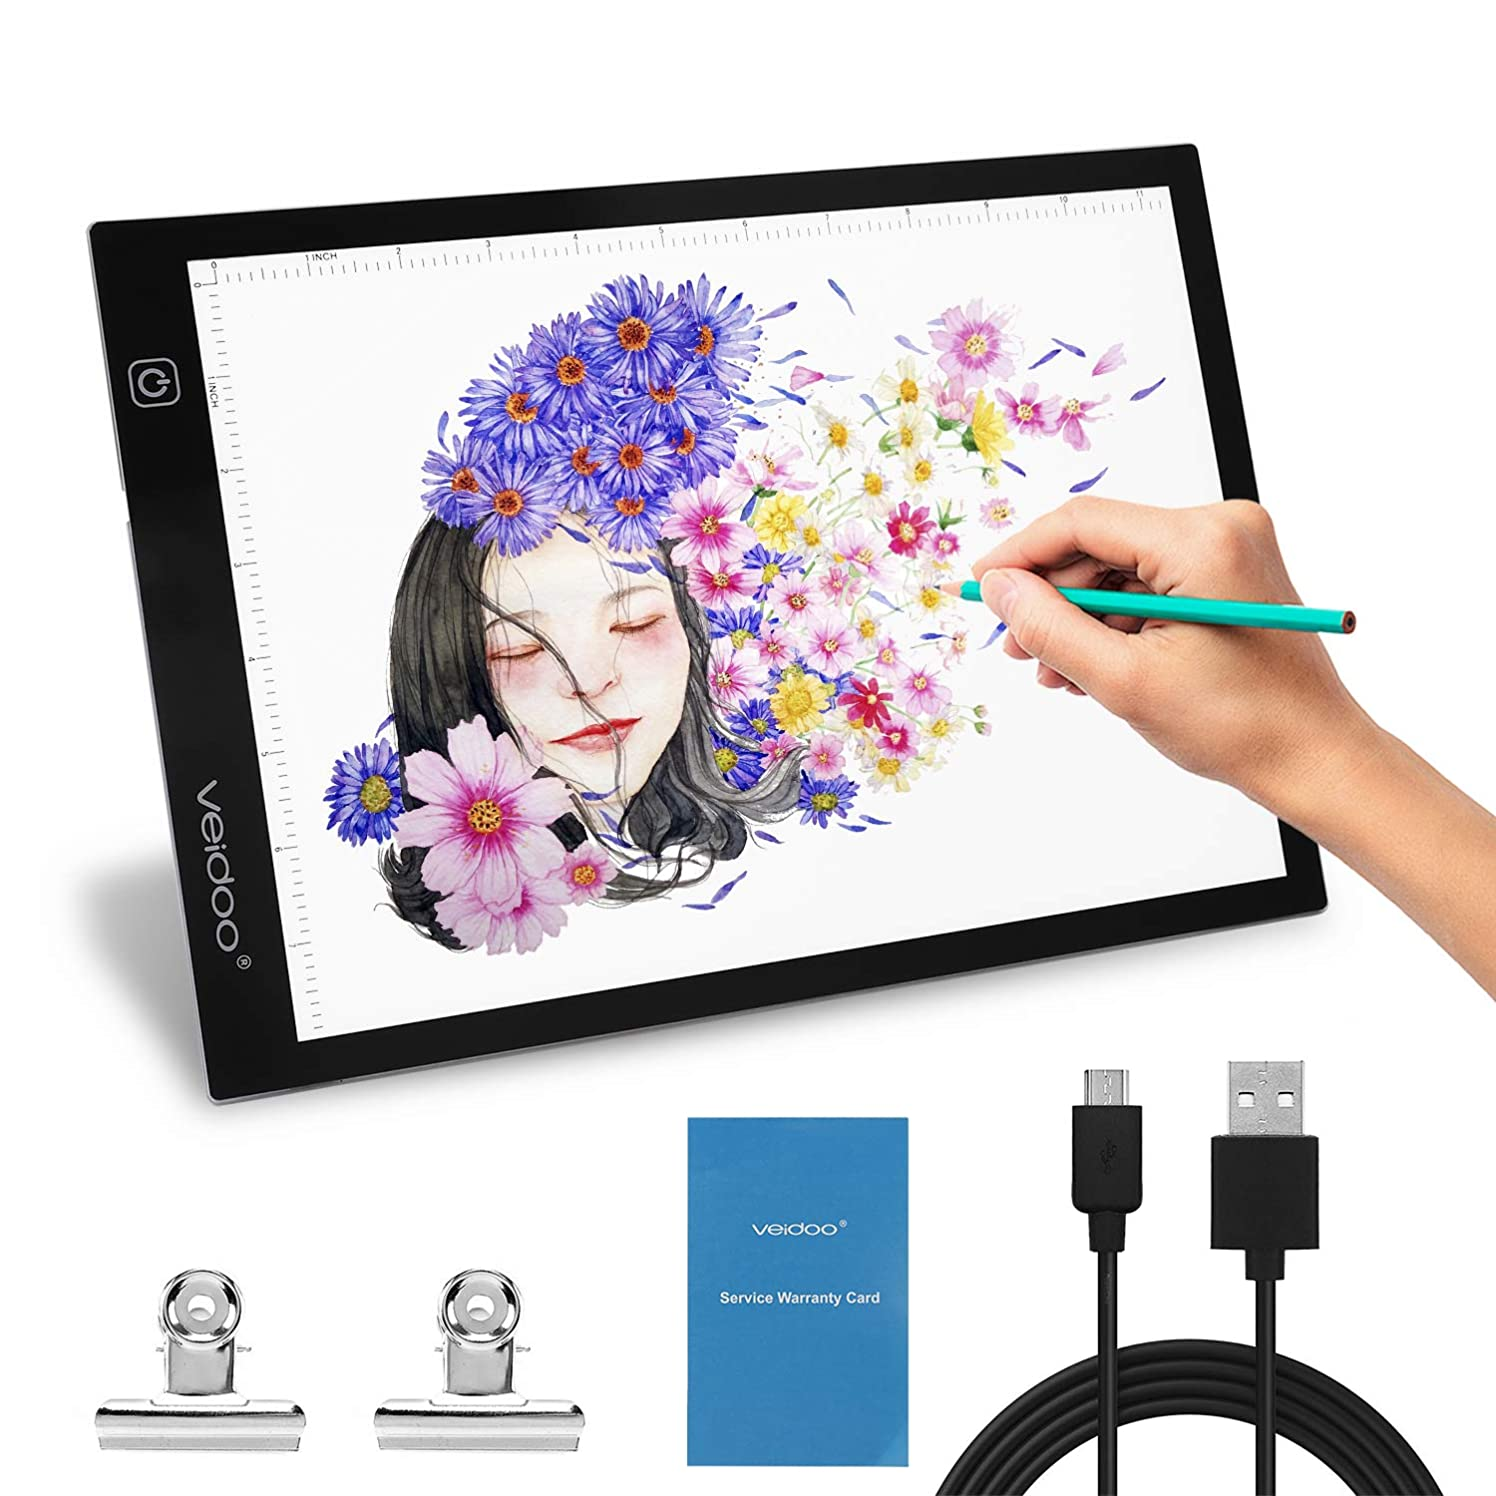 Tracing Light Box, Veidoo A4 LED Tracer Light Pad/Box/Board for Artists, Drawing, Sketching, Animation, X-ray Viewing, Tattoo Transferring